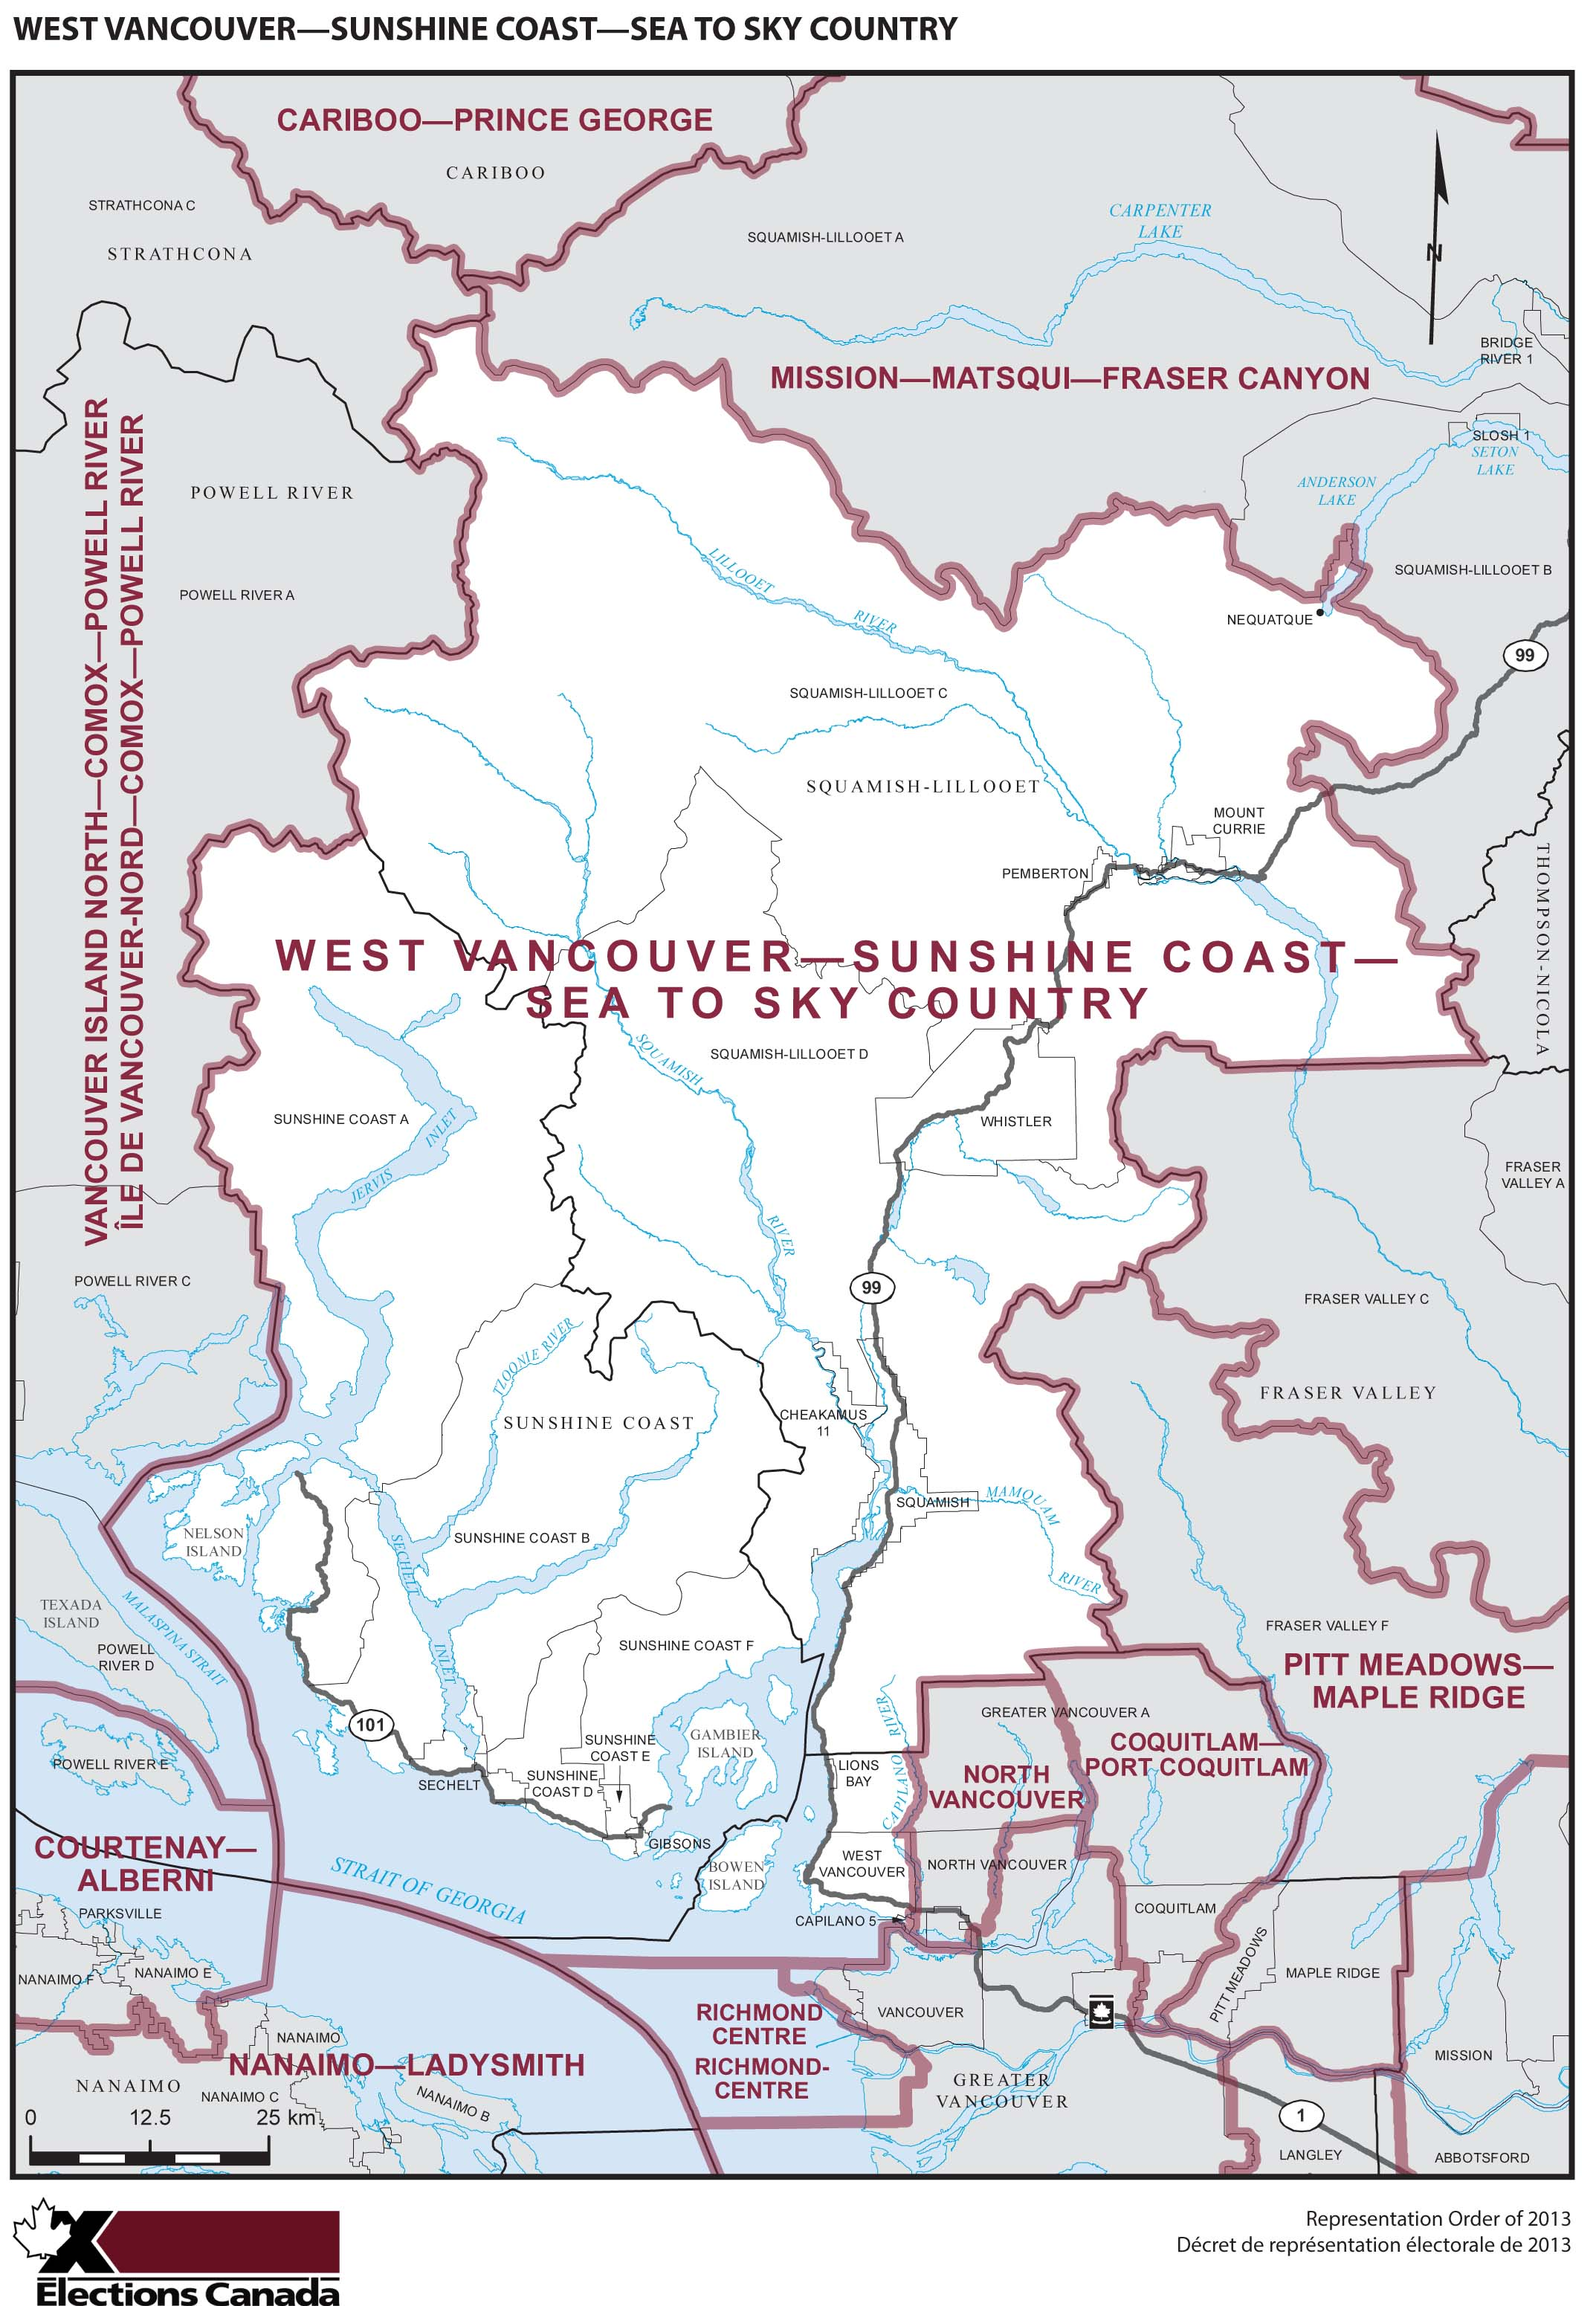 Map: West Vancouver--Sunshine Coast--Sea to Sky Country, Federal electoral district, 2013 Representation Order (in white), British Columbia